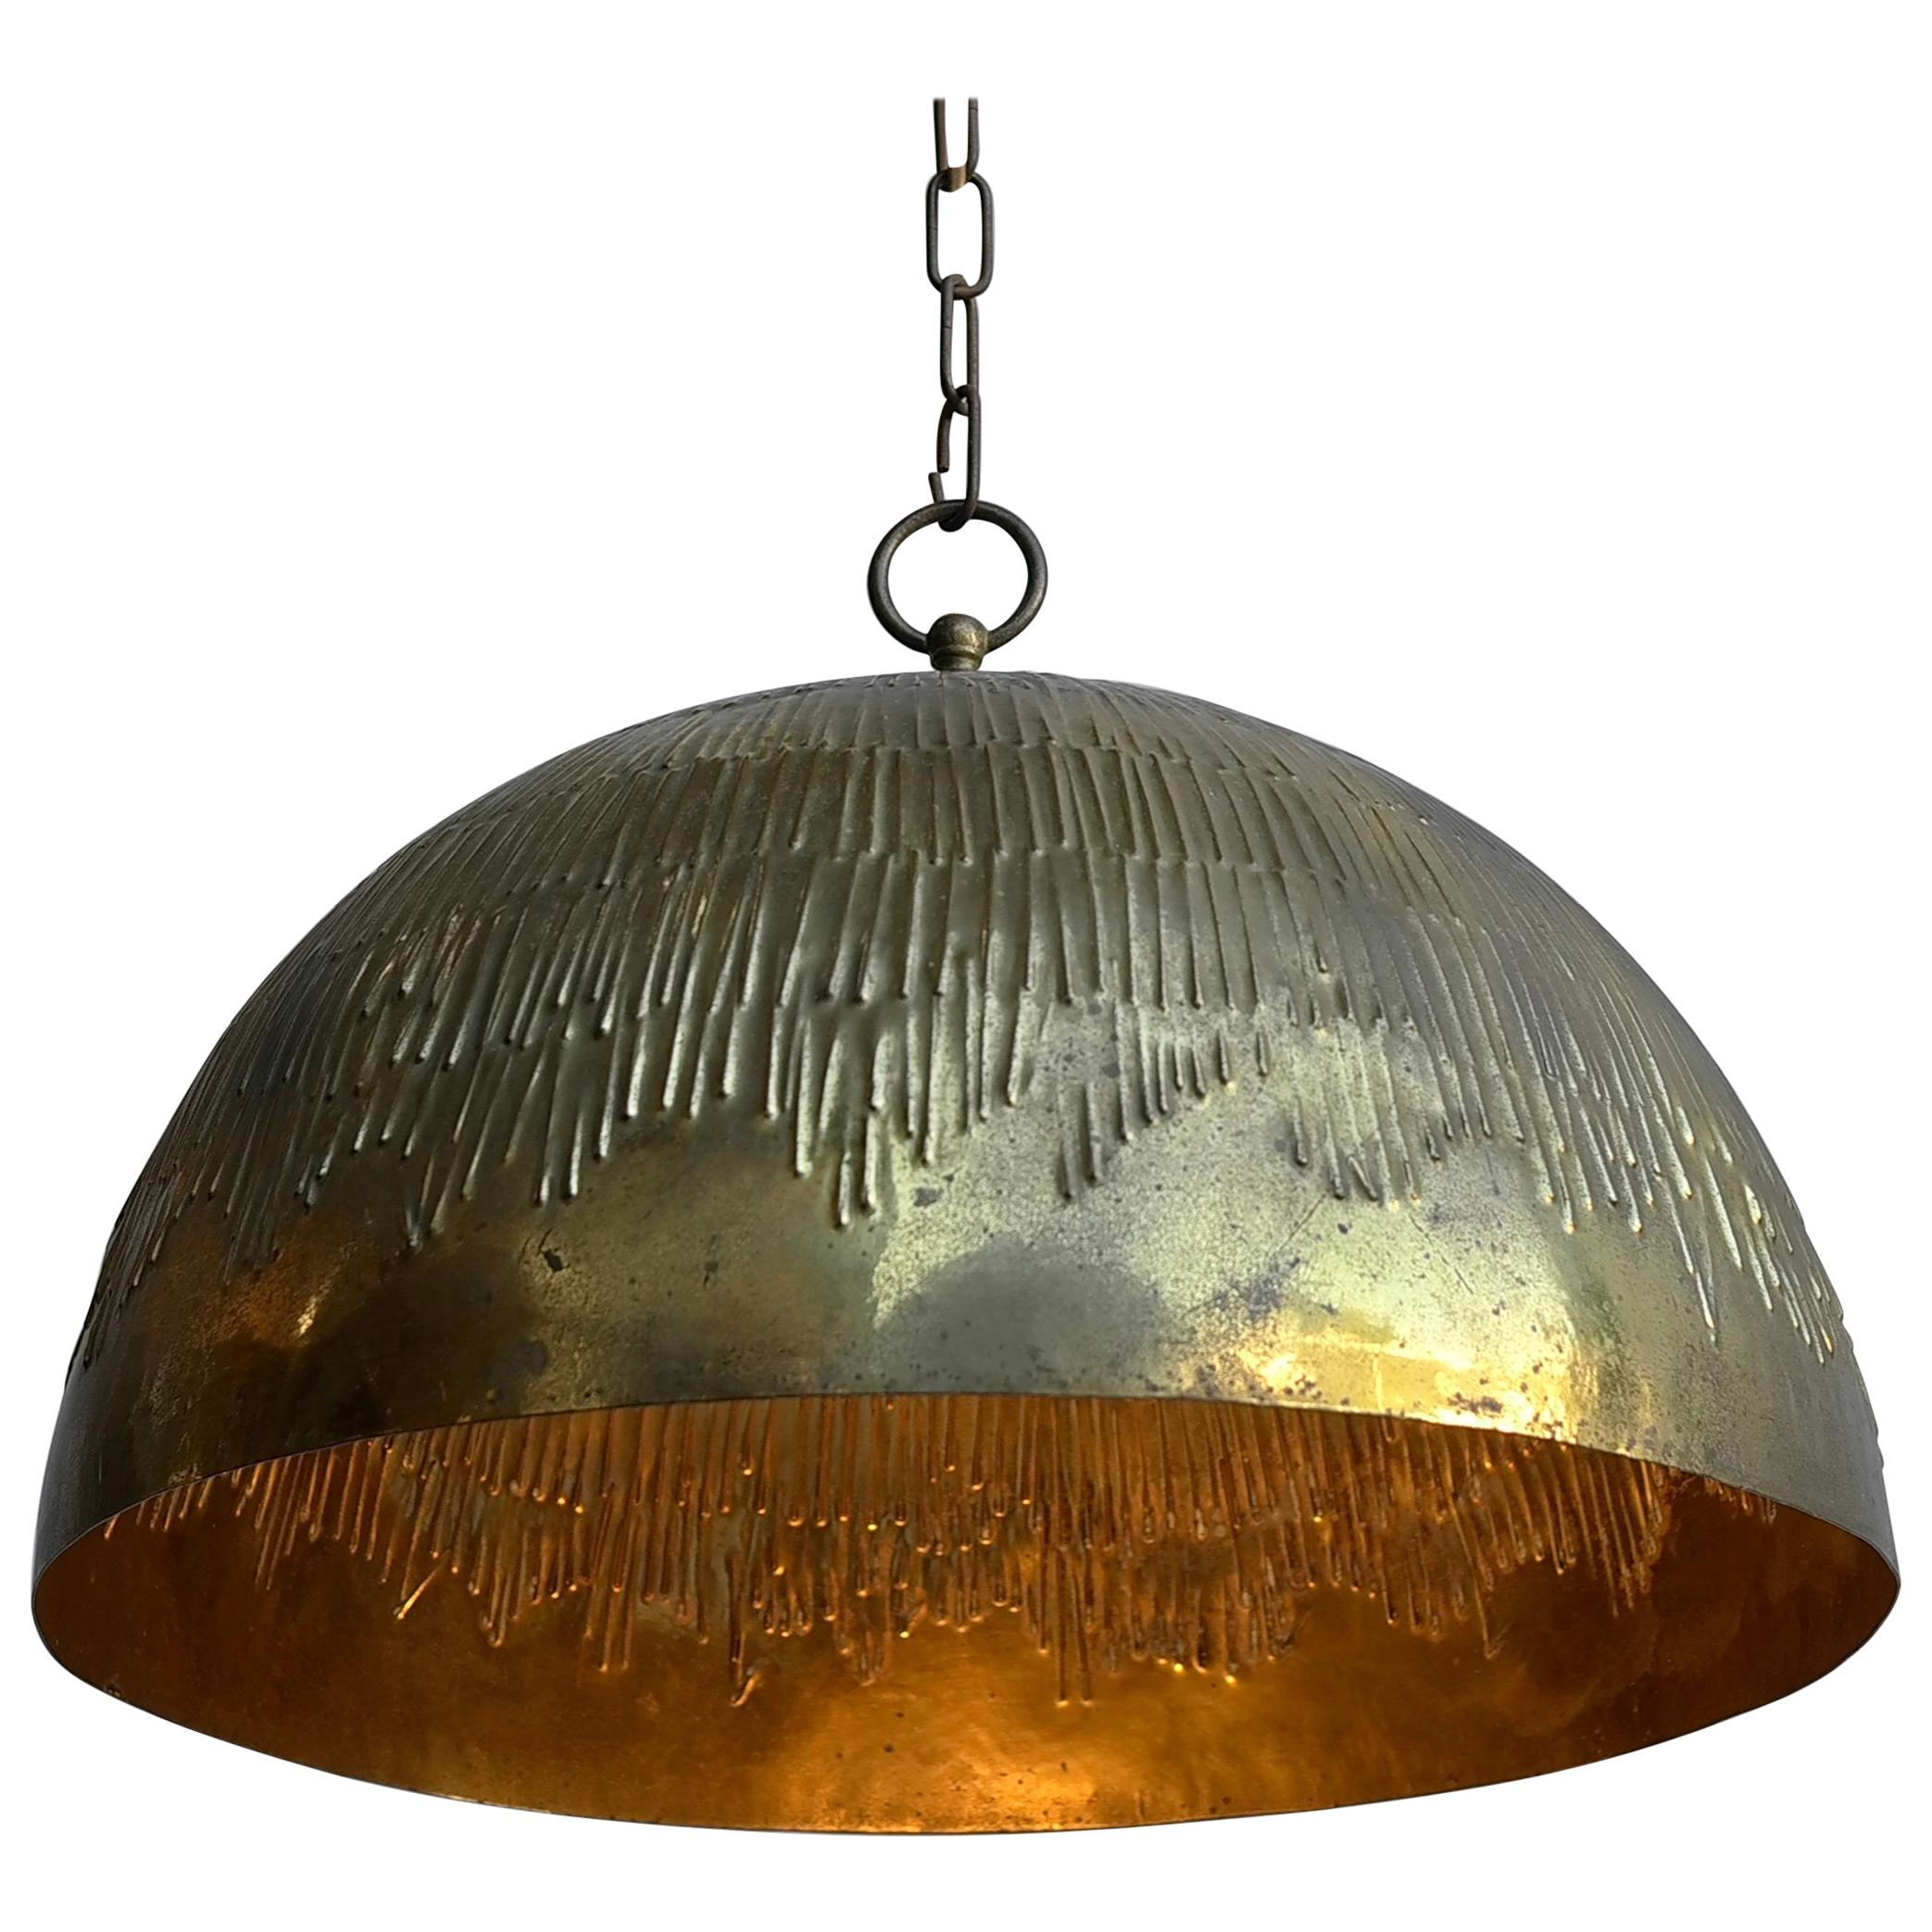 Copper Svend Aage Holm Sorensen Pendant Lamp for Holm Sorensen and Company